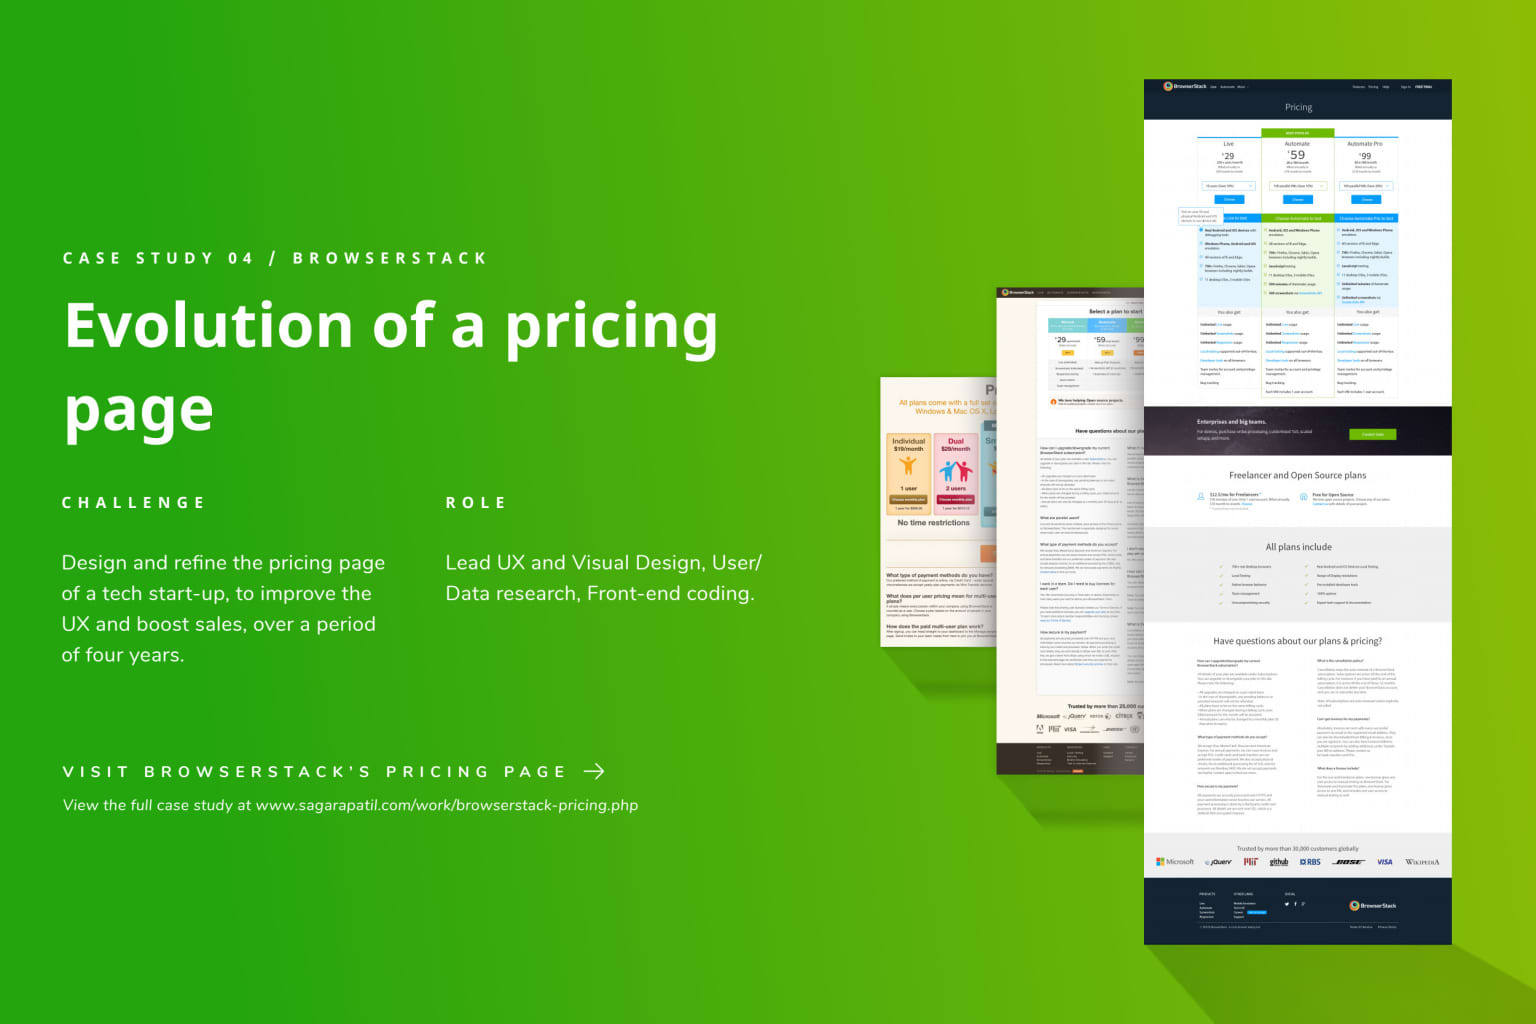 Evolution of a pricing page.